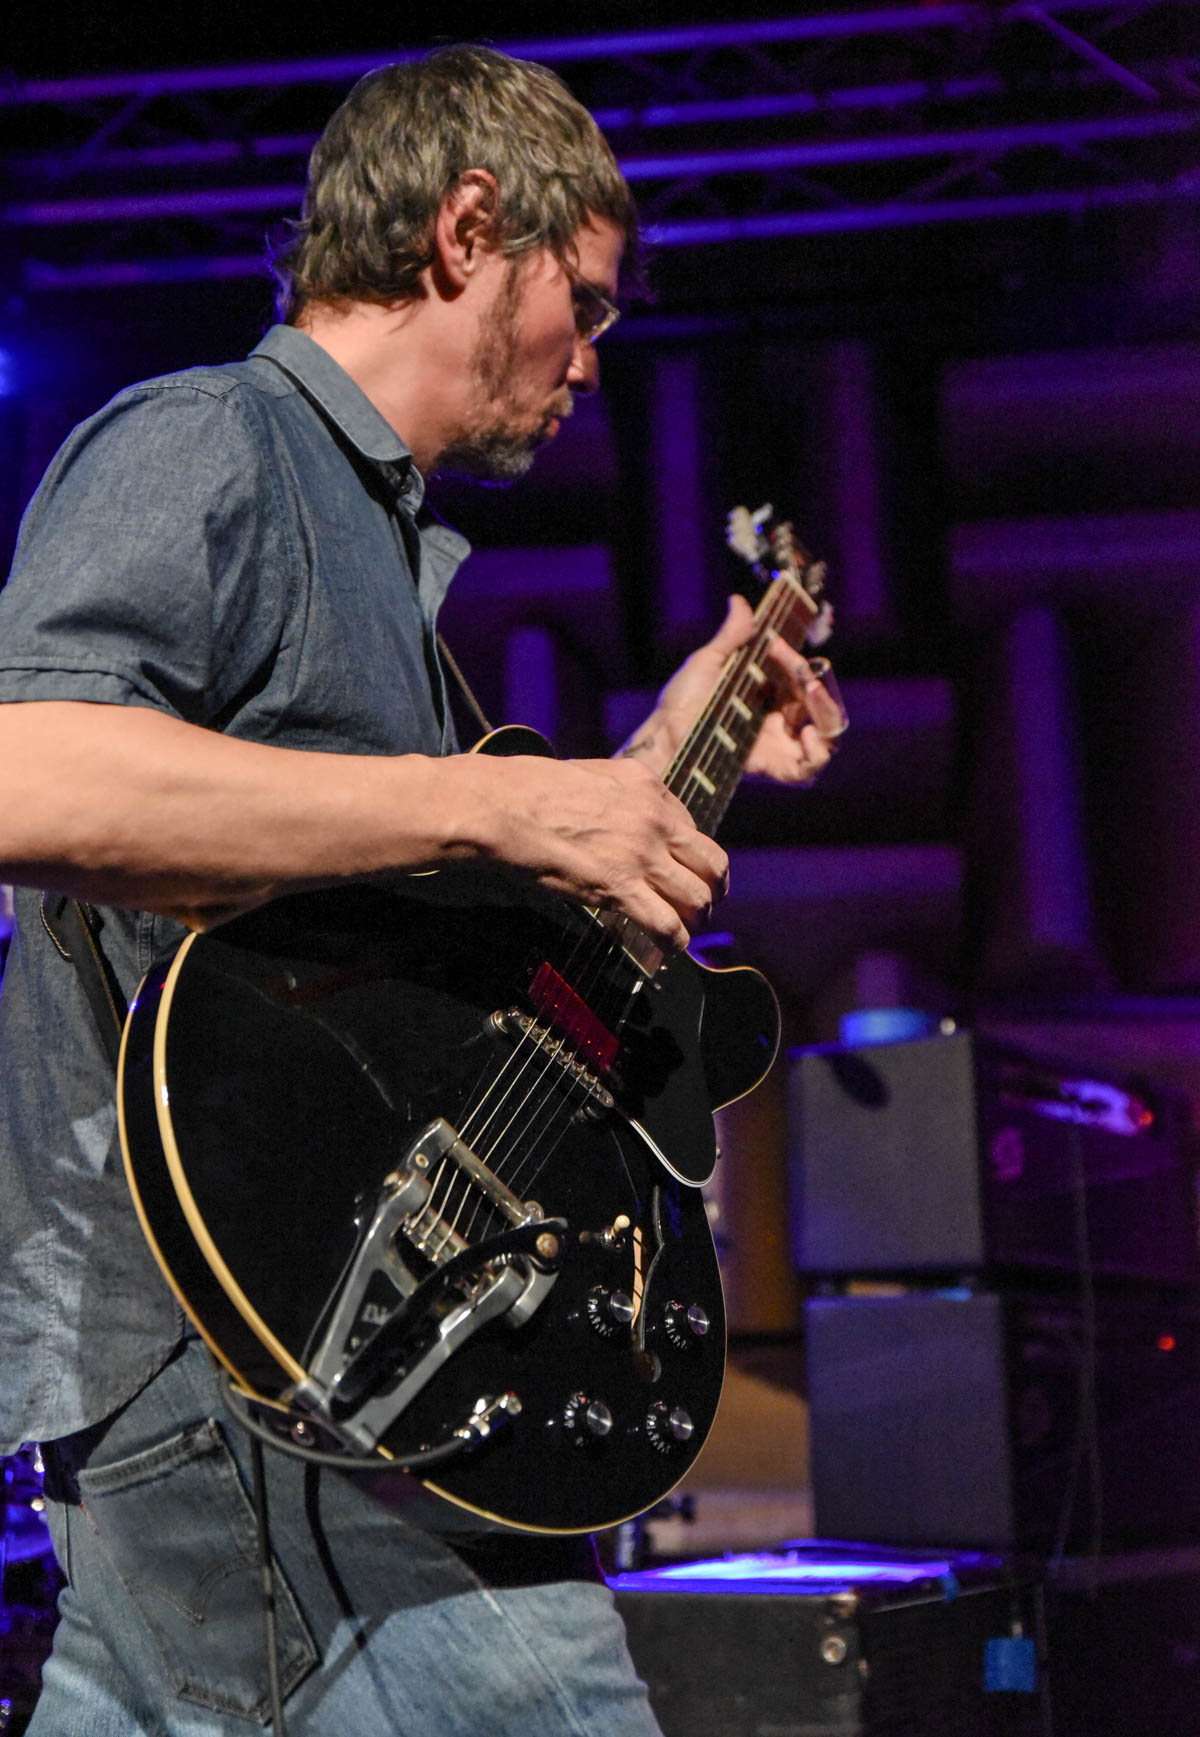 North Mississippi Allstars | Hi-Fi | Indianapolis, IN. | 01.23.2020 | Photo Credit: ©Pix Meyers 2020